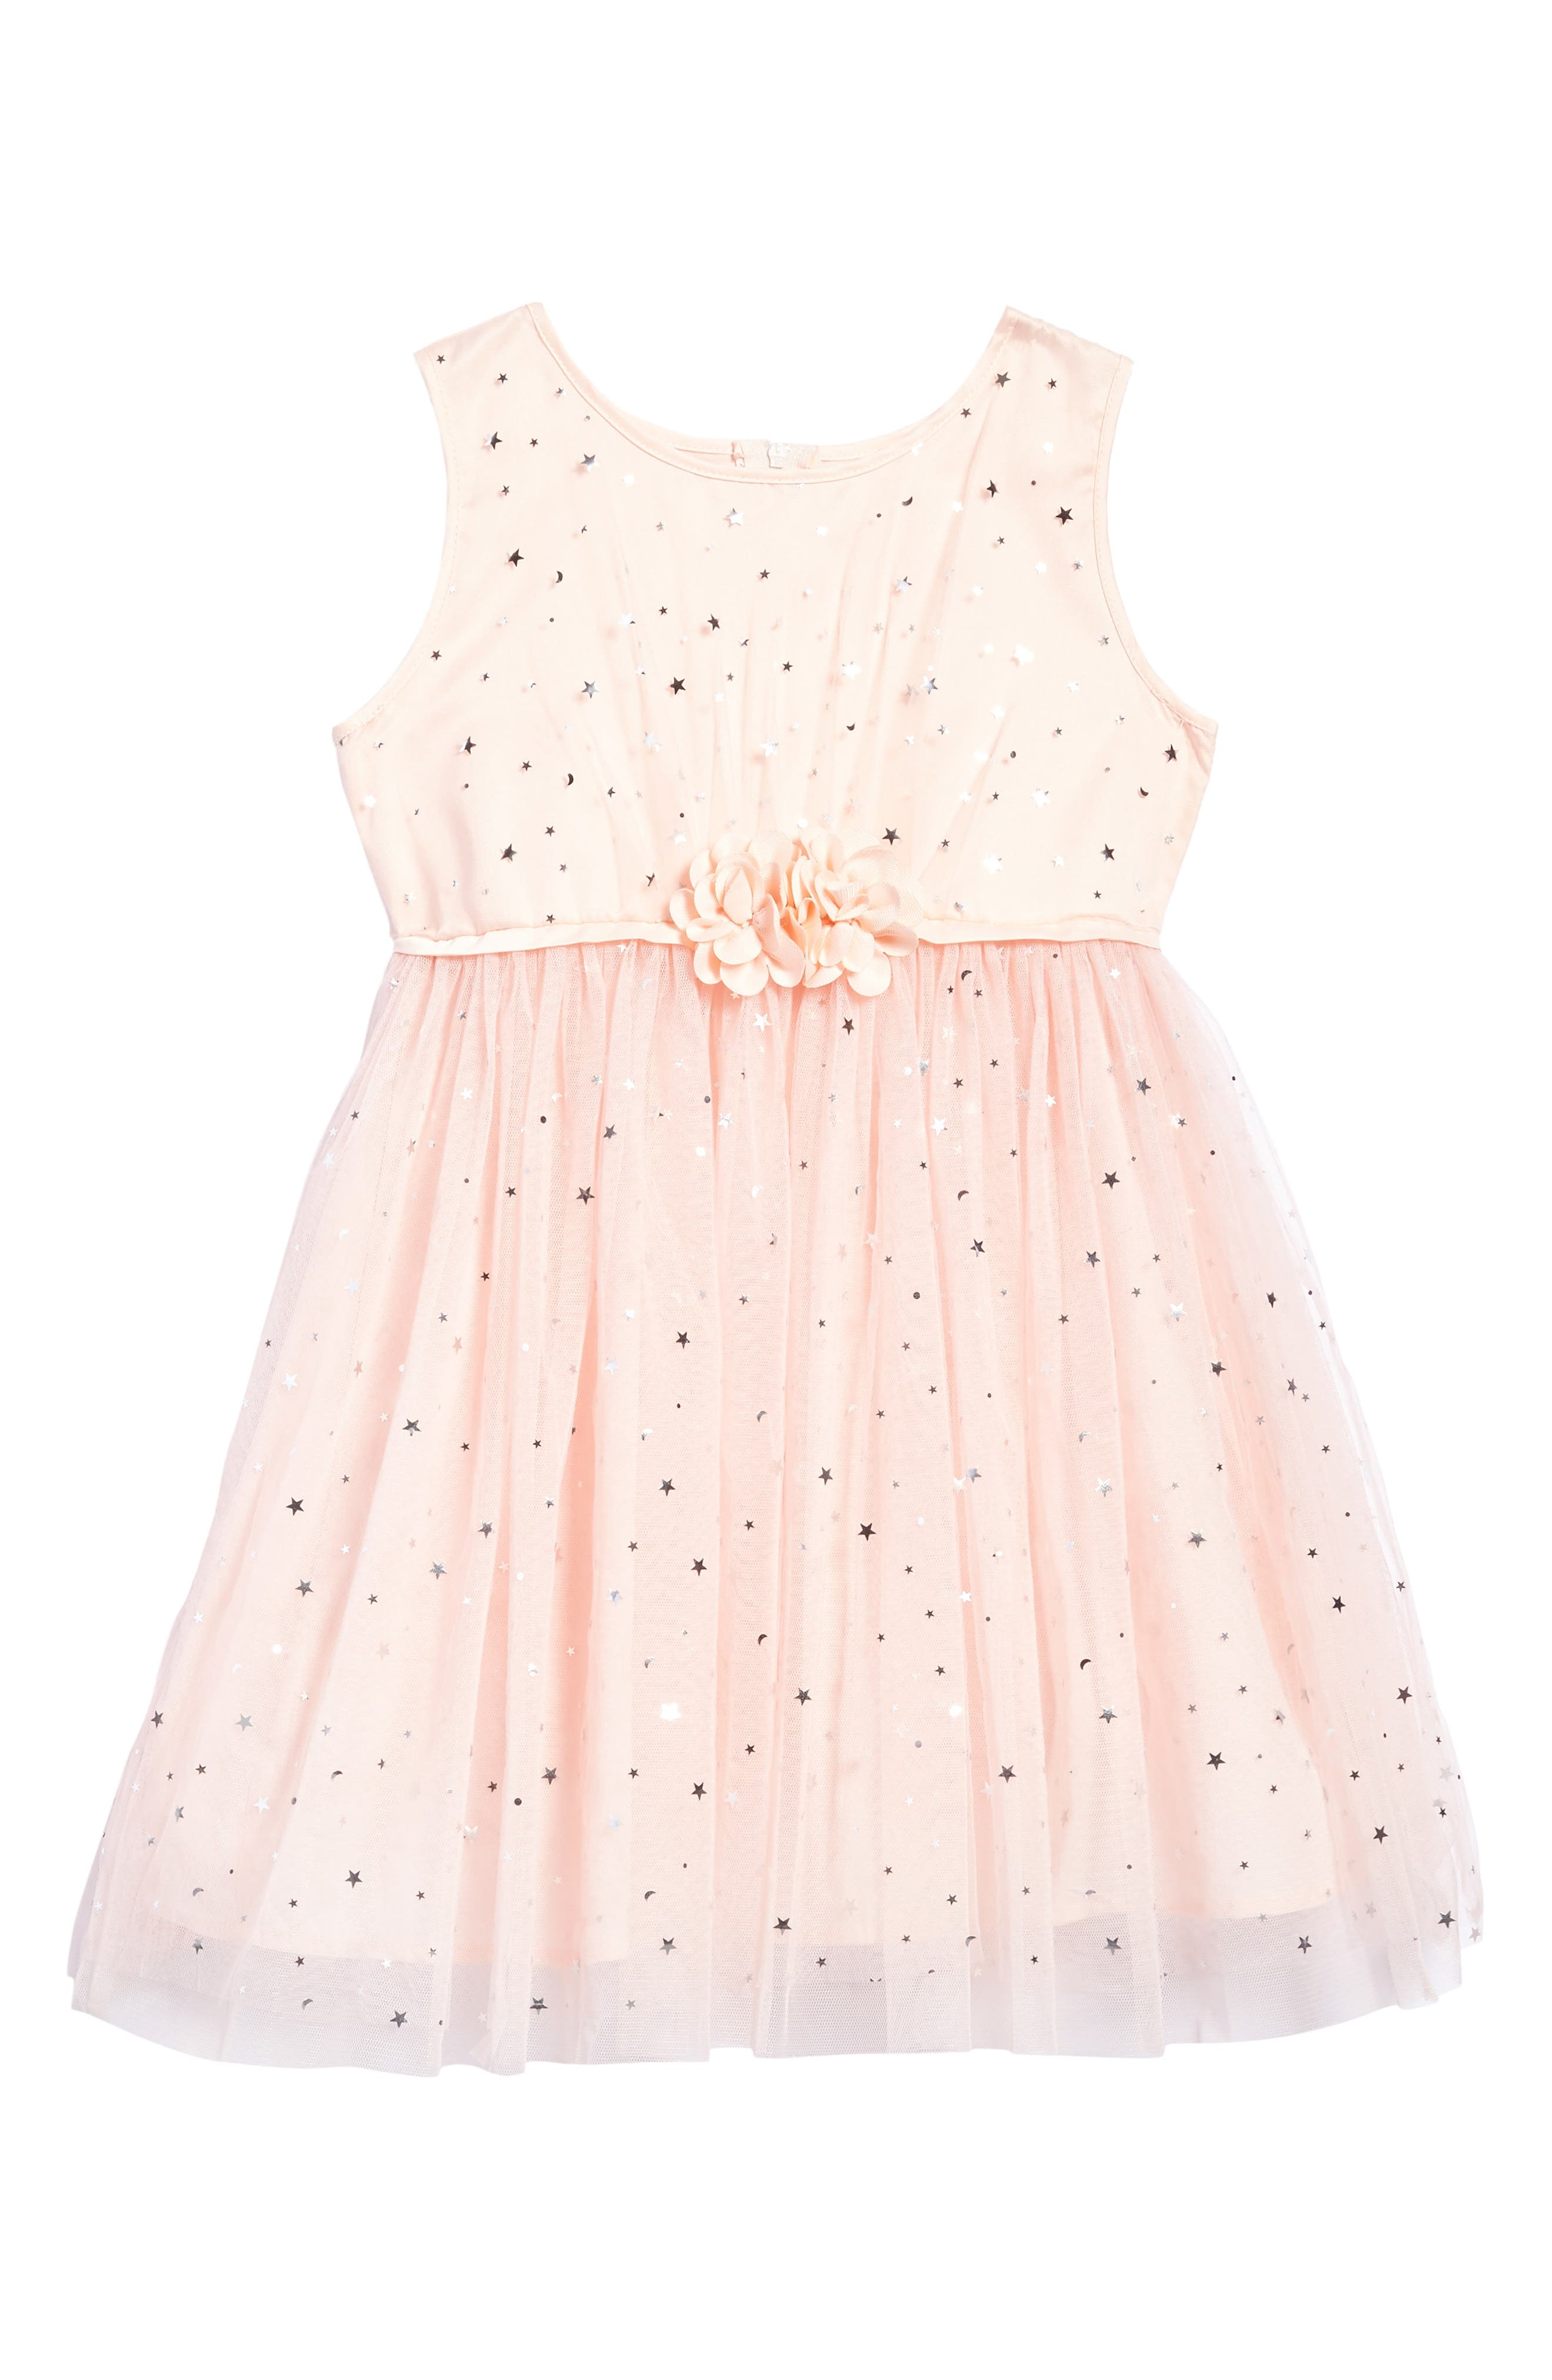 Star Tulle Dress,                             Main thumbnail 1, color,                             Pink